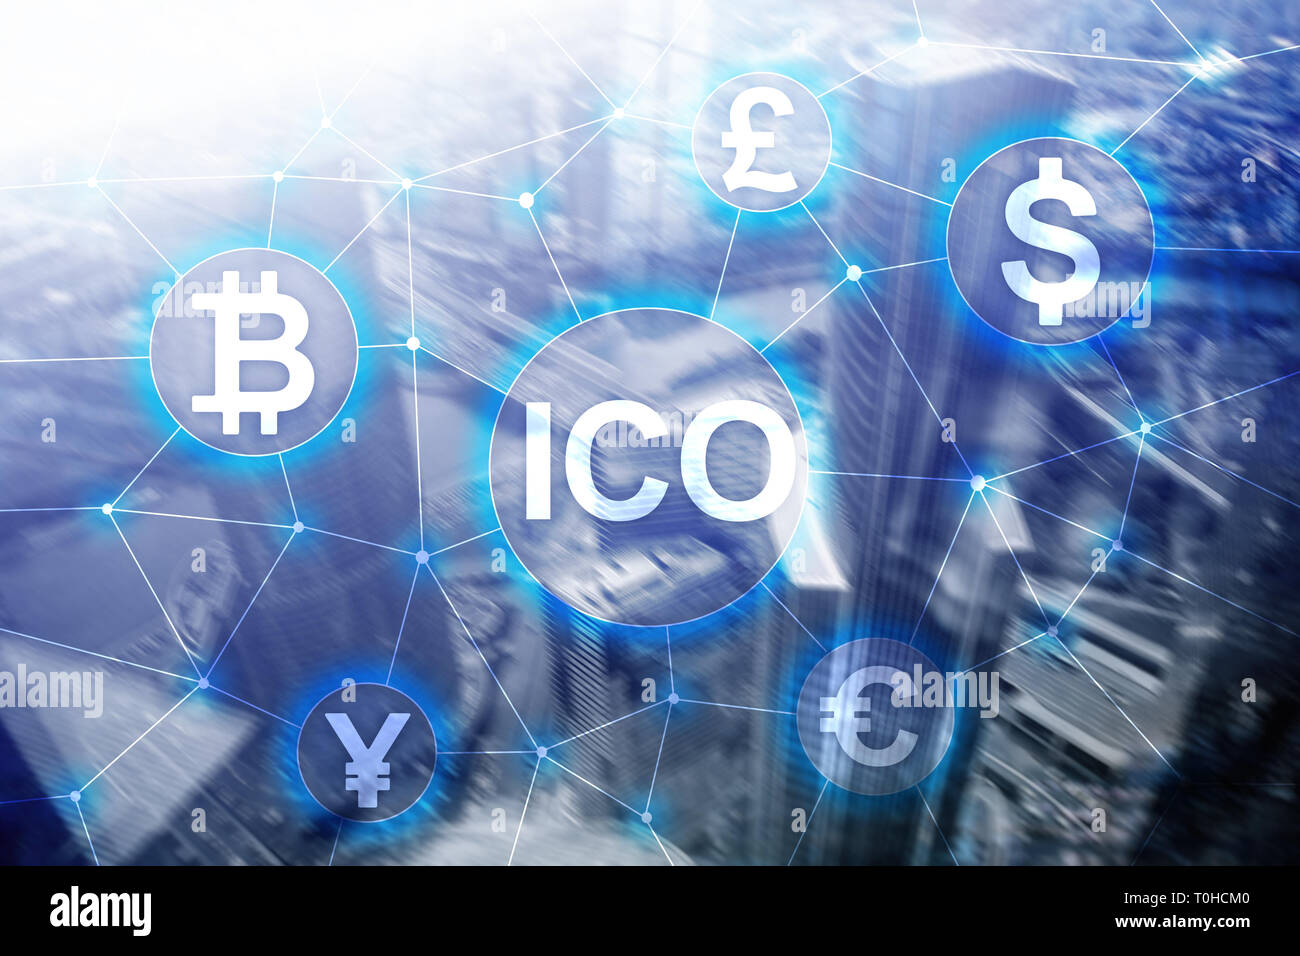 ICO - Initial coin offering, Blockchain and cryptocurrency concept on blurred business building background. - Stock Image